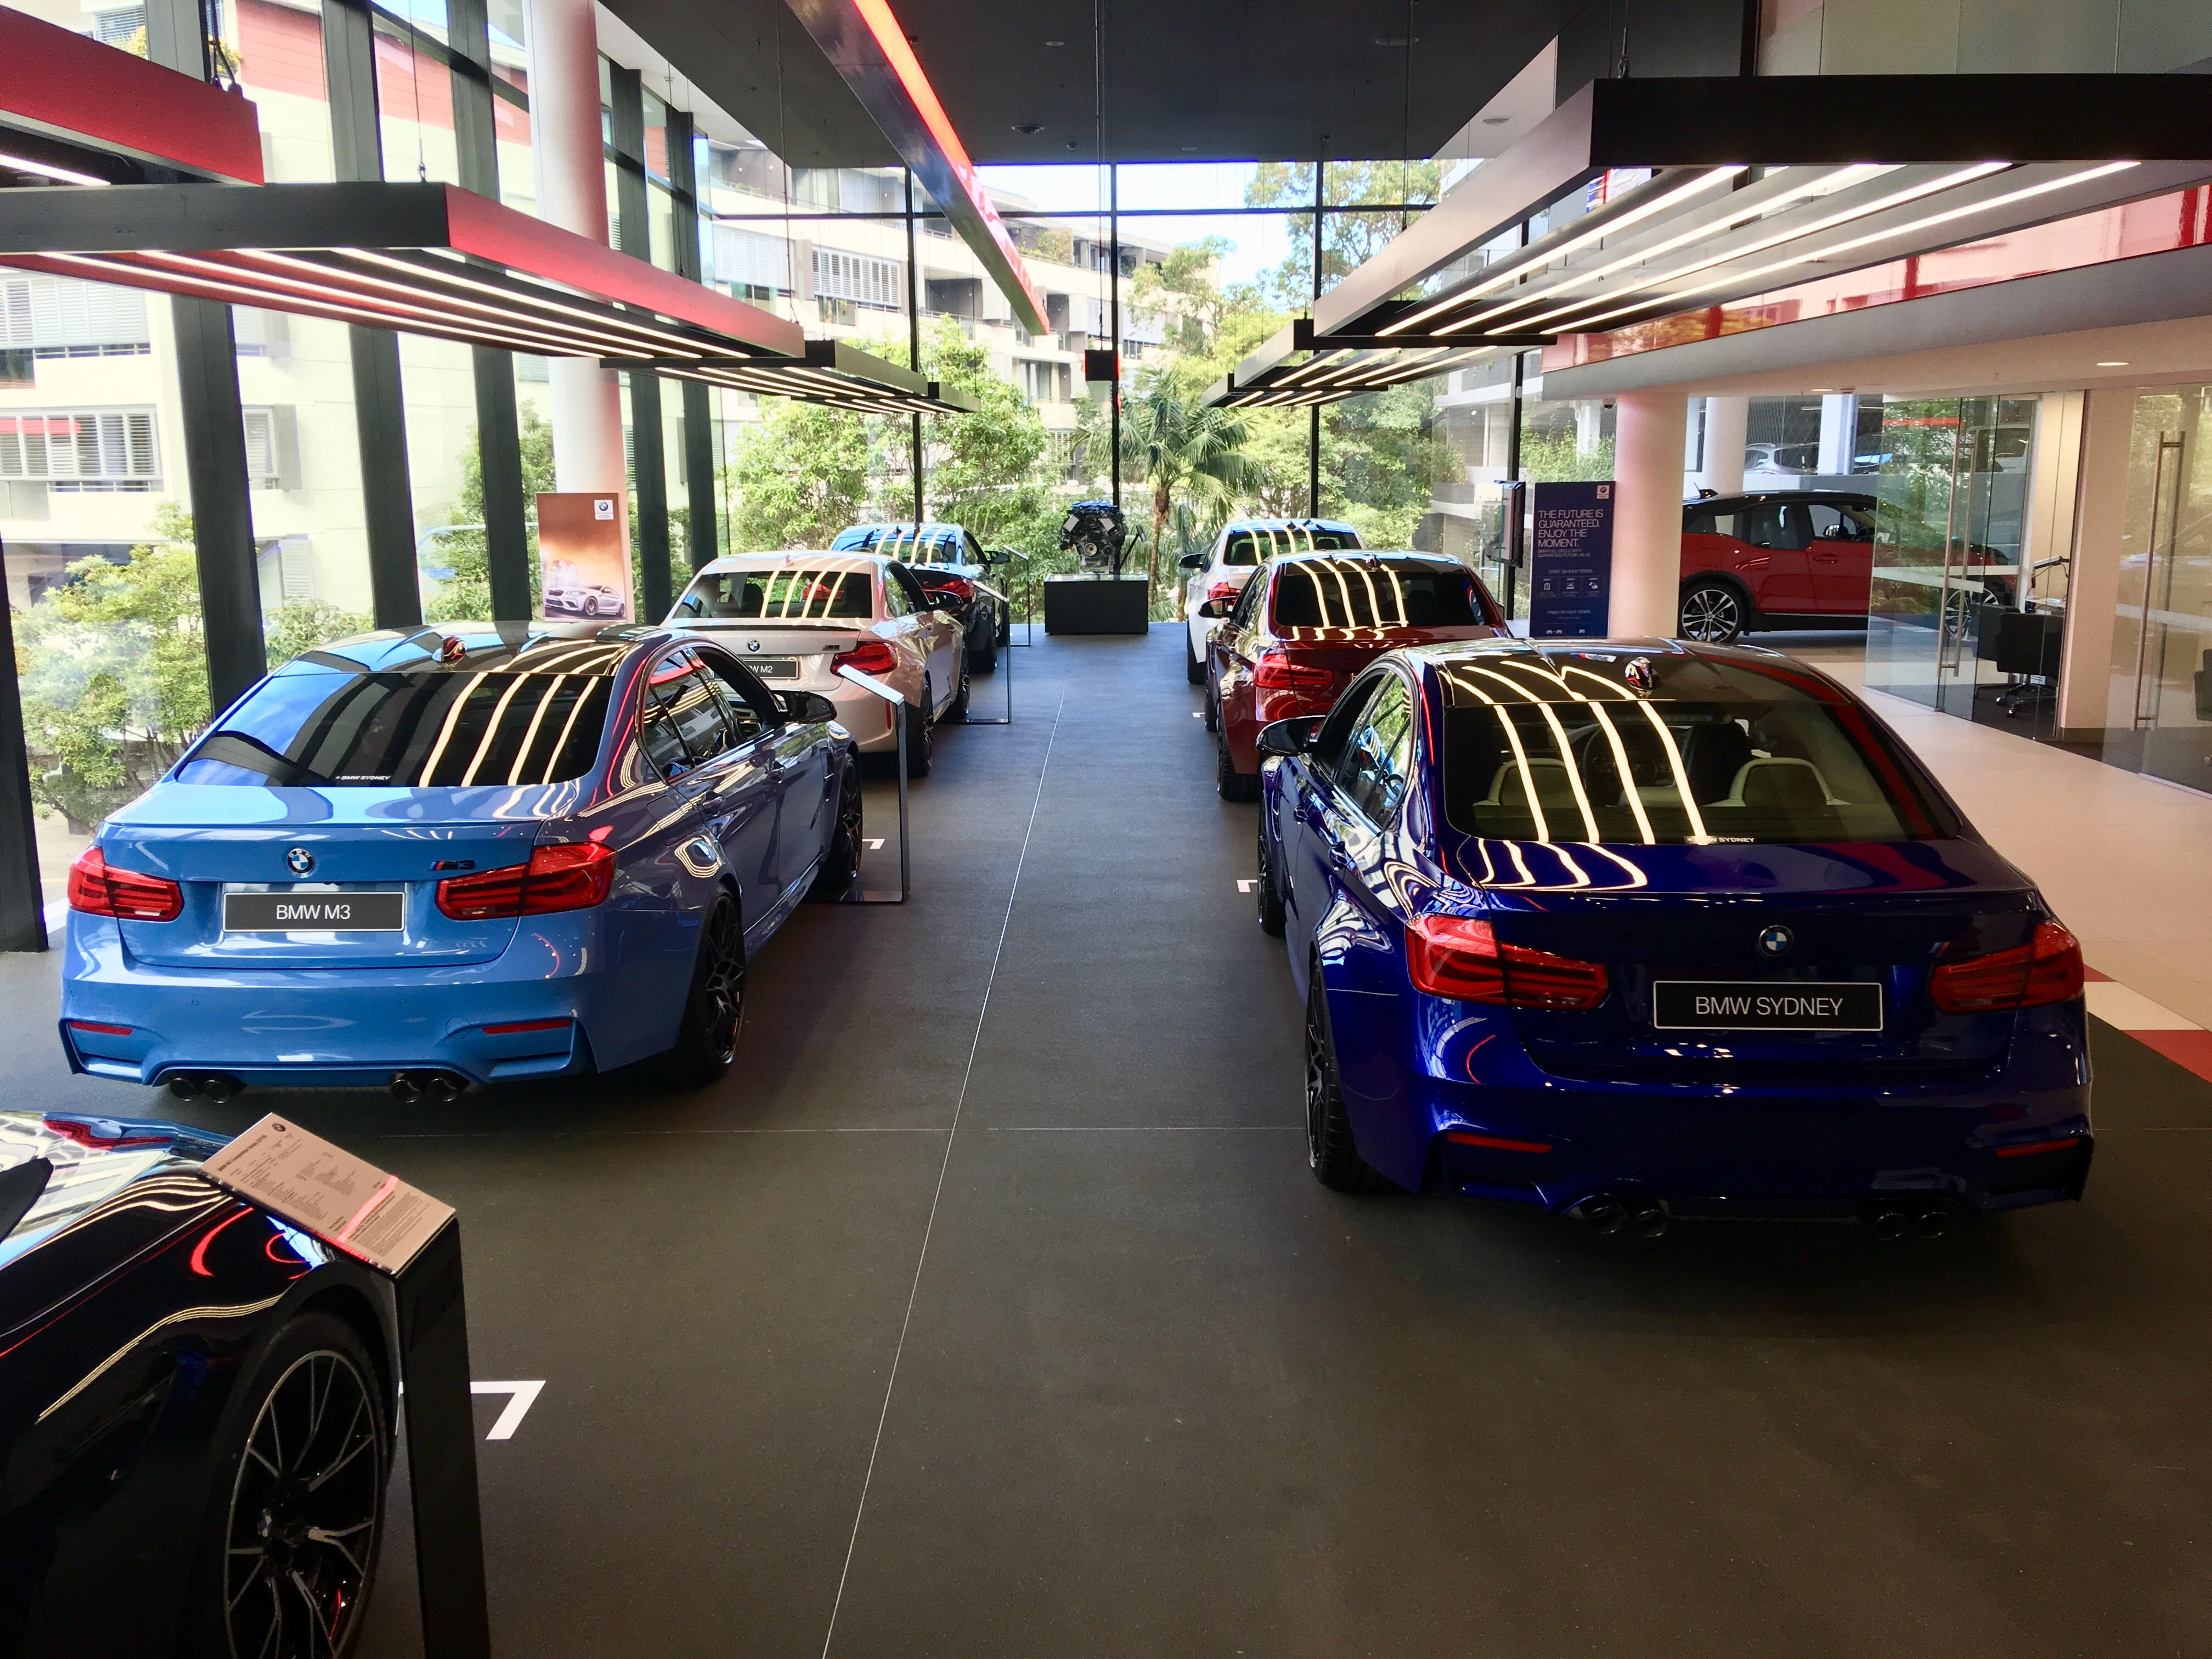 Widespread price reductions with new Luxury Car Tax threshold, but not from BMW